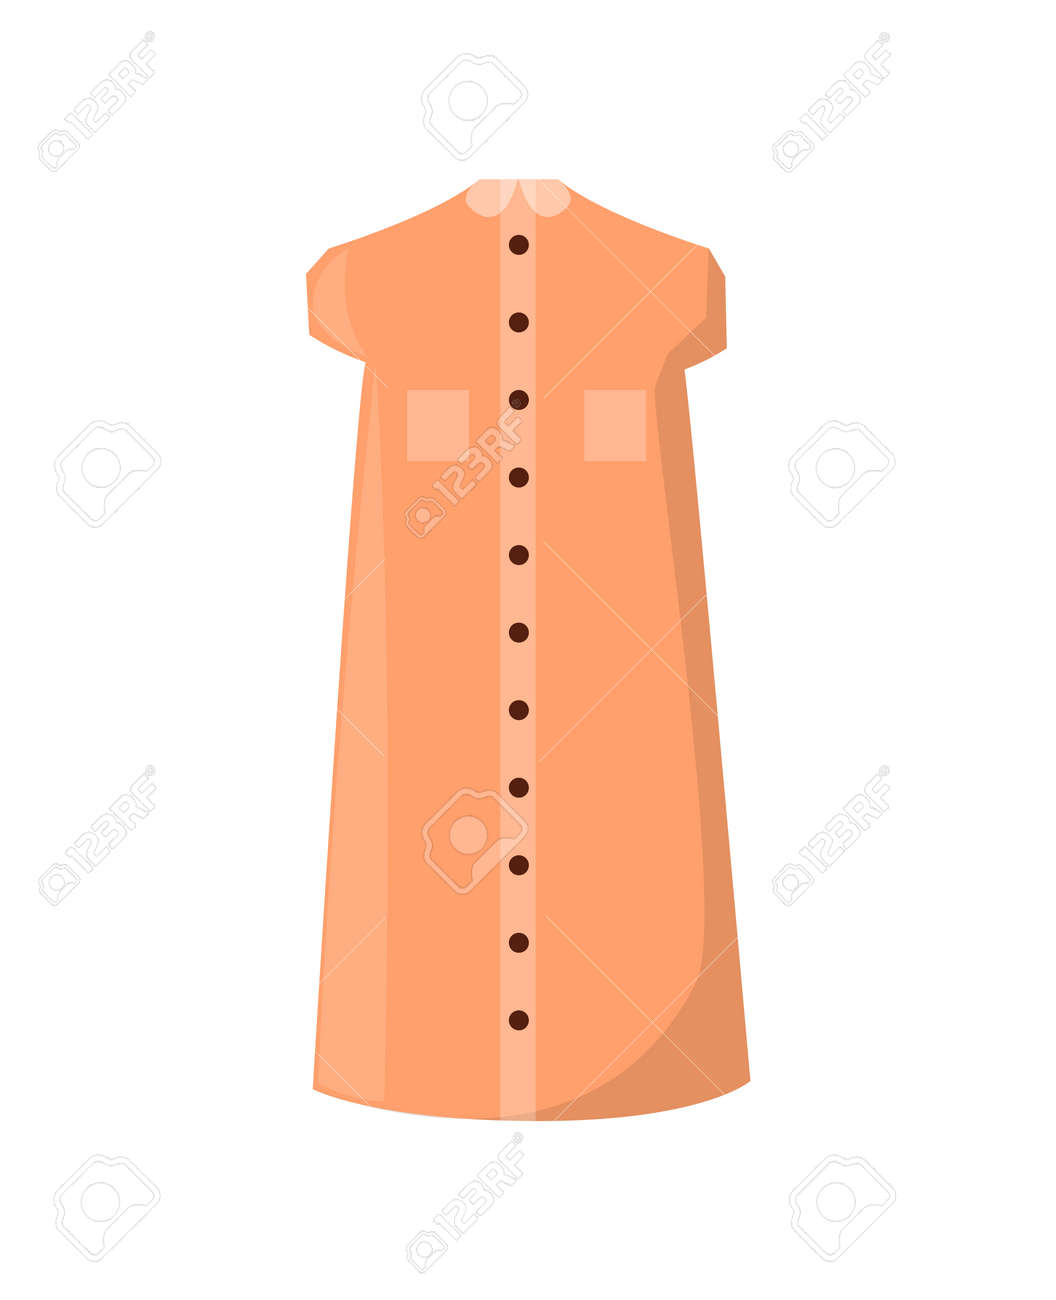 bf6abe4fa8 Stock Photo - Stylish Summer Dress with Pockets and Buttons